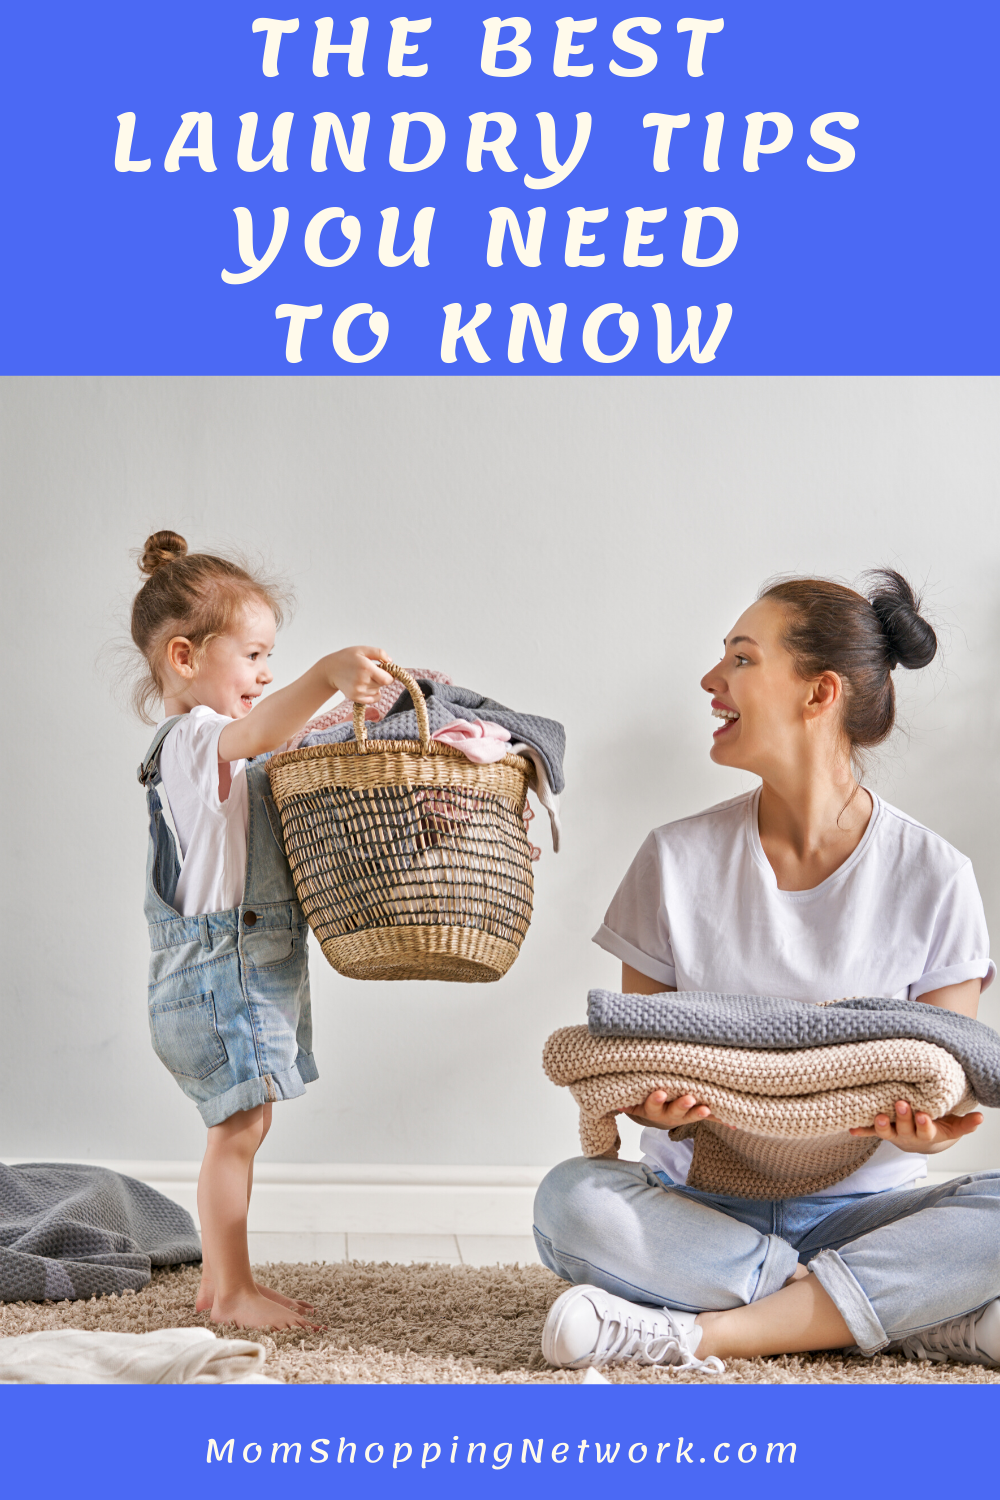 The Best Laundry Tips You Need To Know.  #laundrytips #laundry #householdtips #cleaningtips #momshoppingnetwork